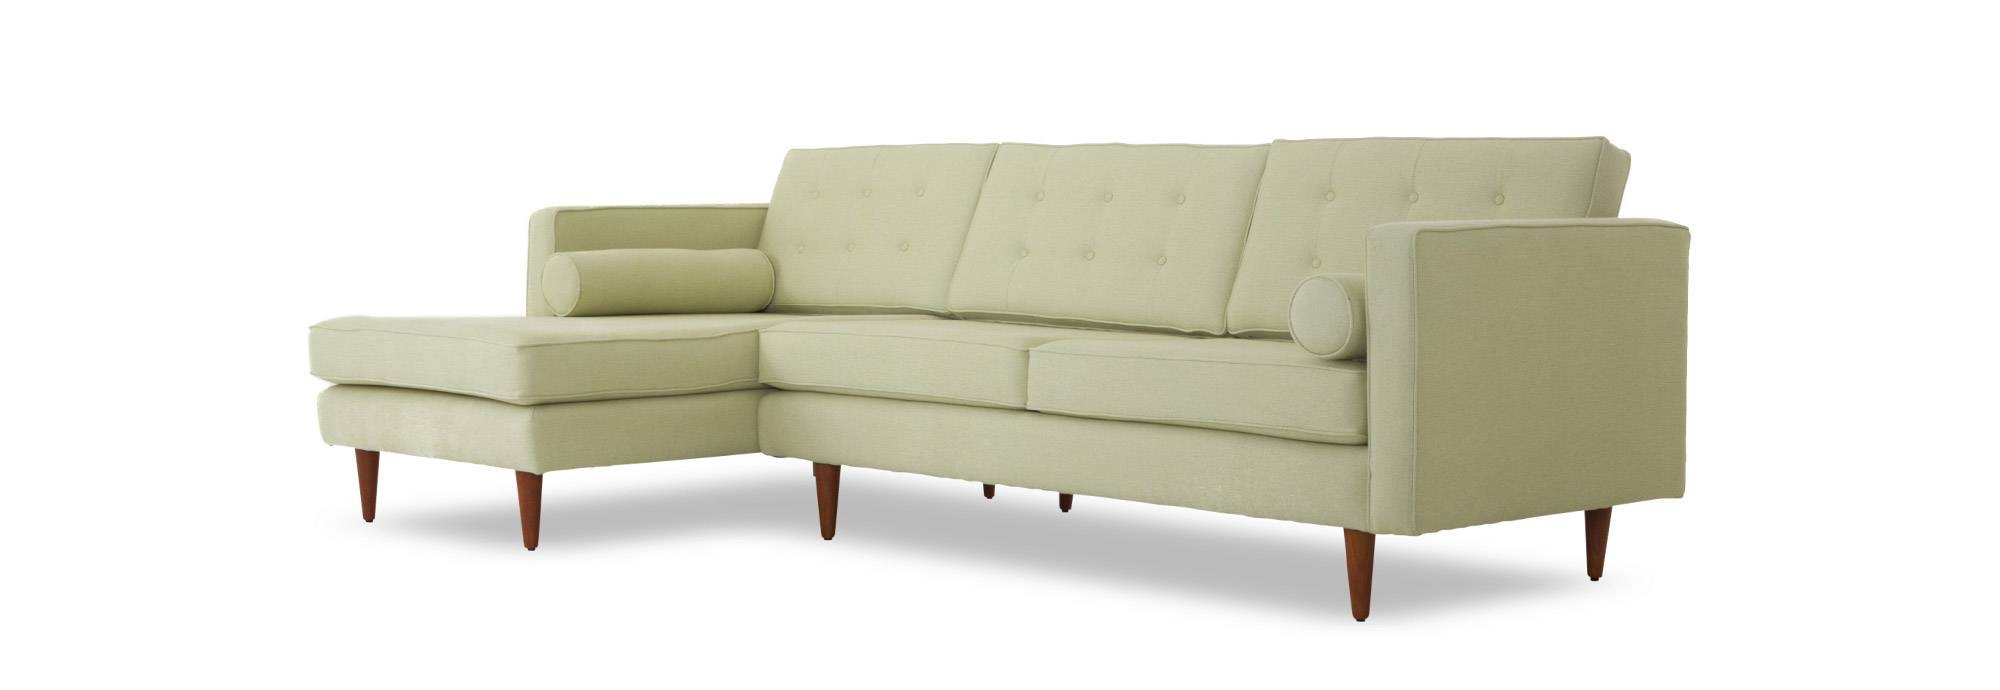 Braxton Sectional | Joybird intended for Braxton Sectional Sofa (Image 16 of 30)